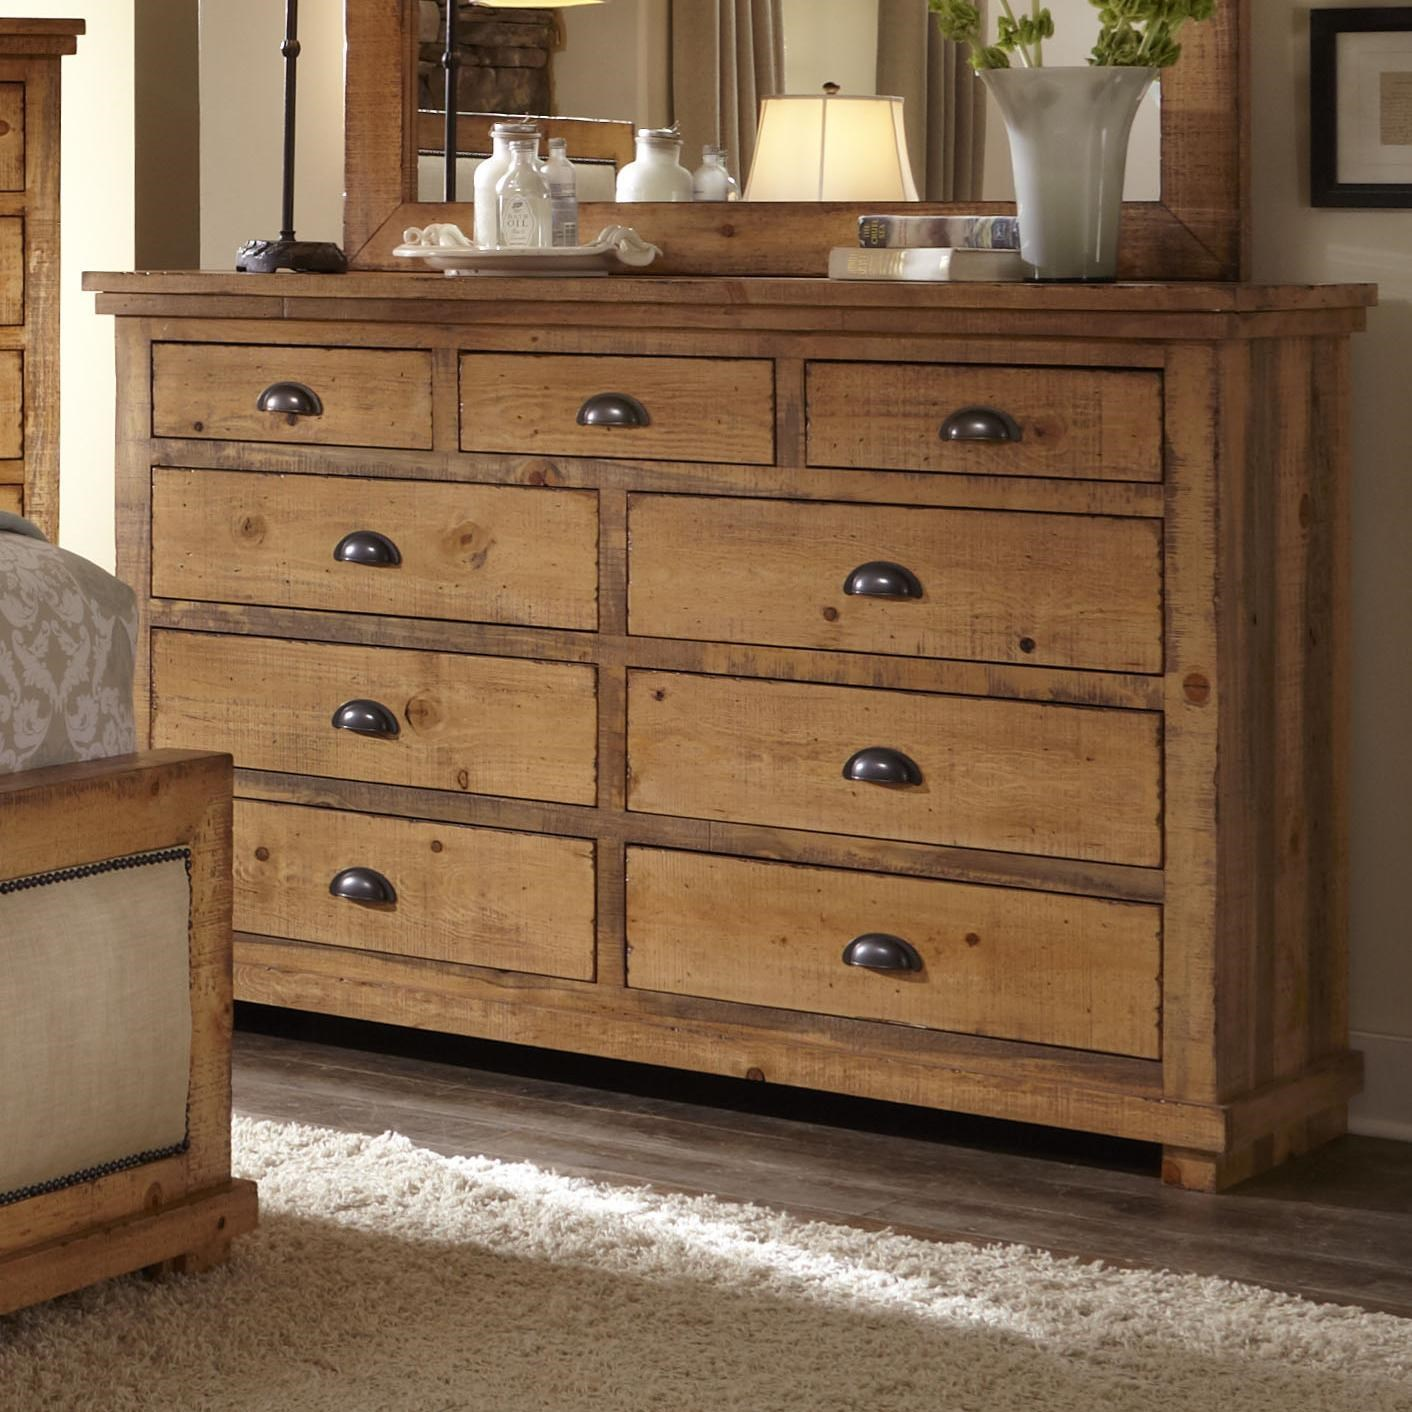 Charming Progressive Furniture Willow Distressed Pine Drawer Dresser